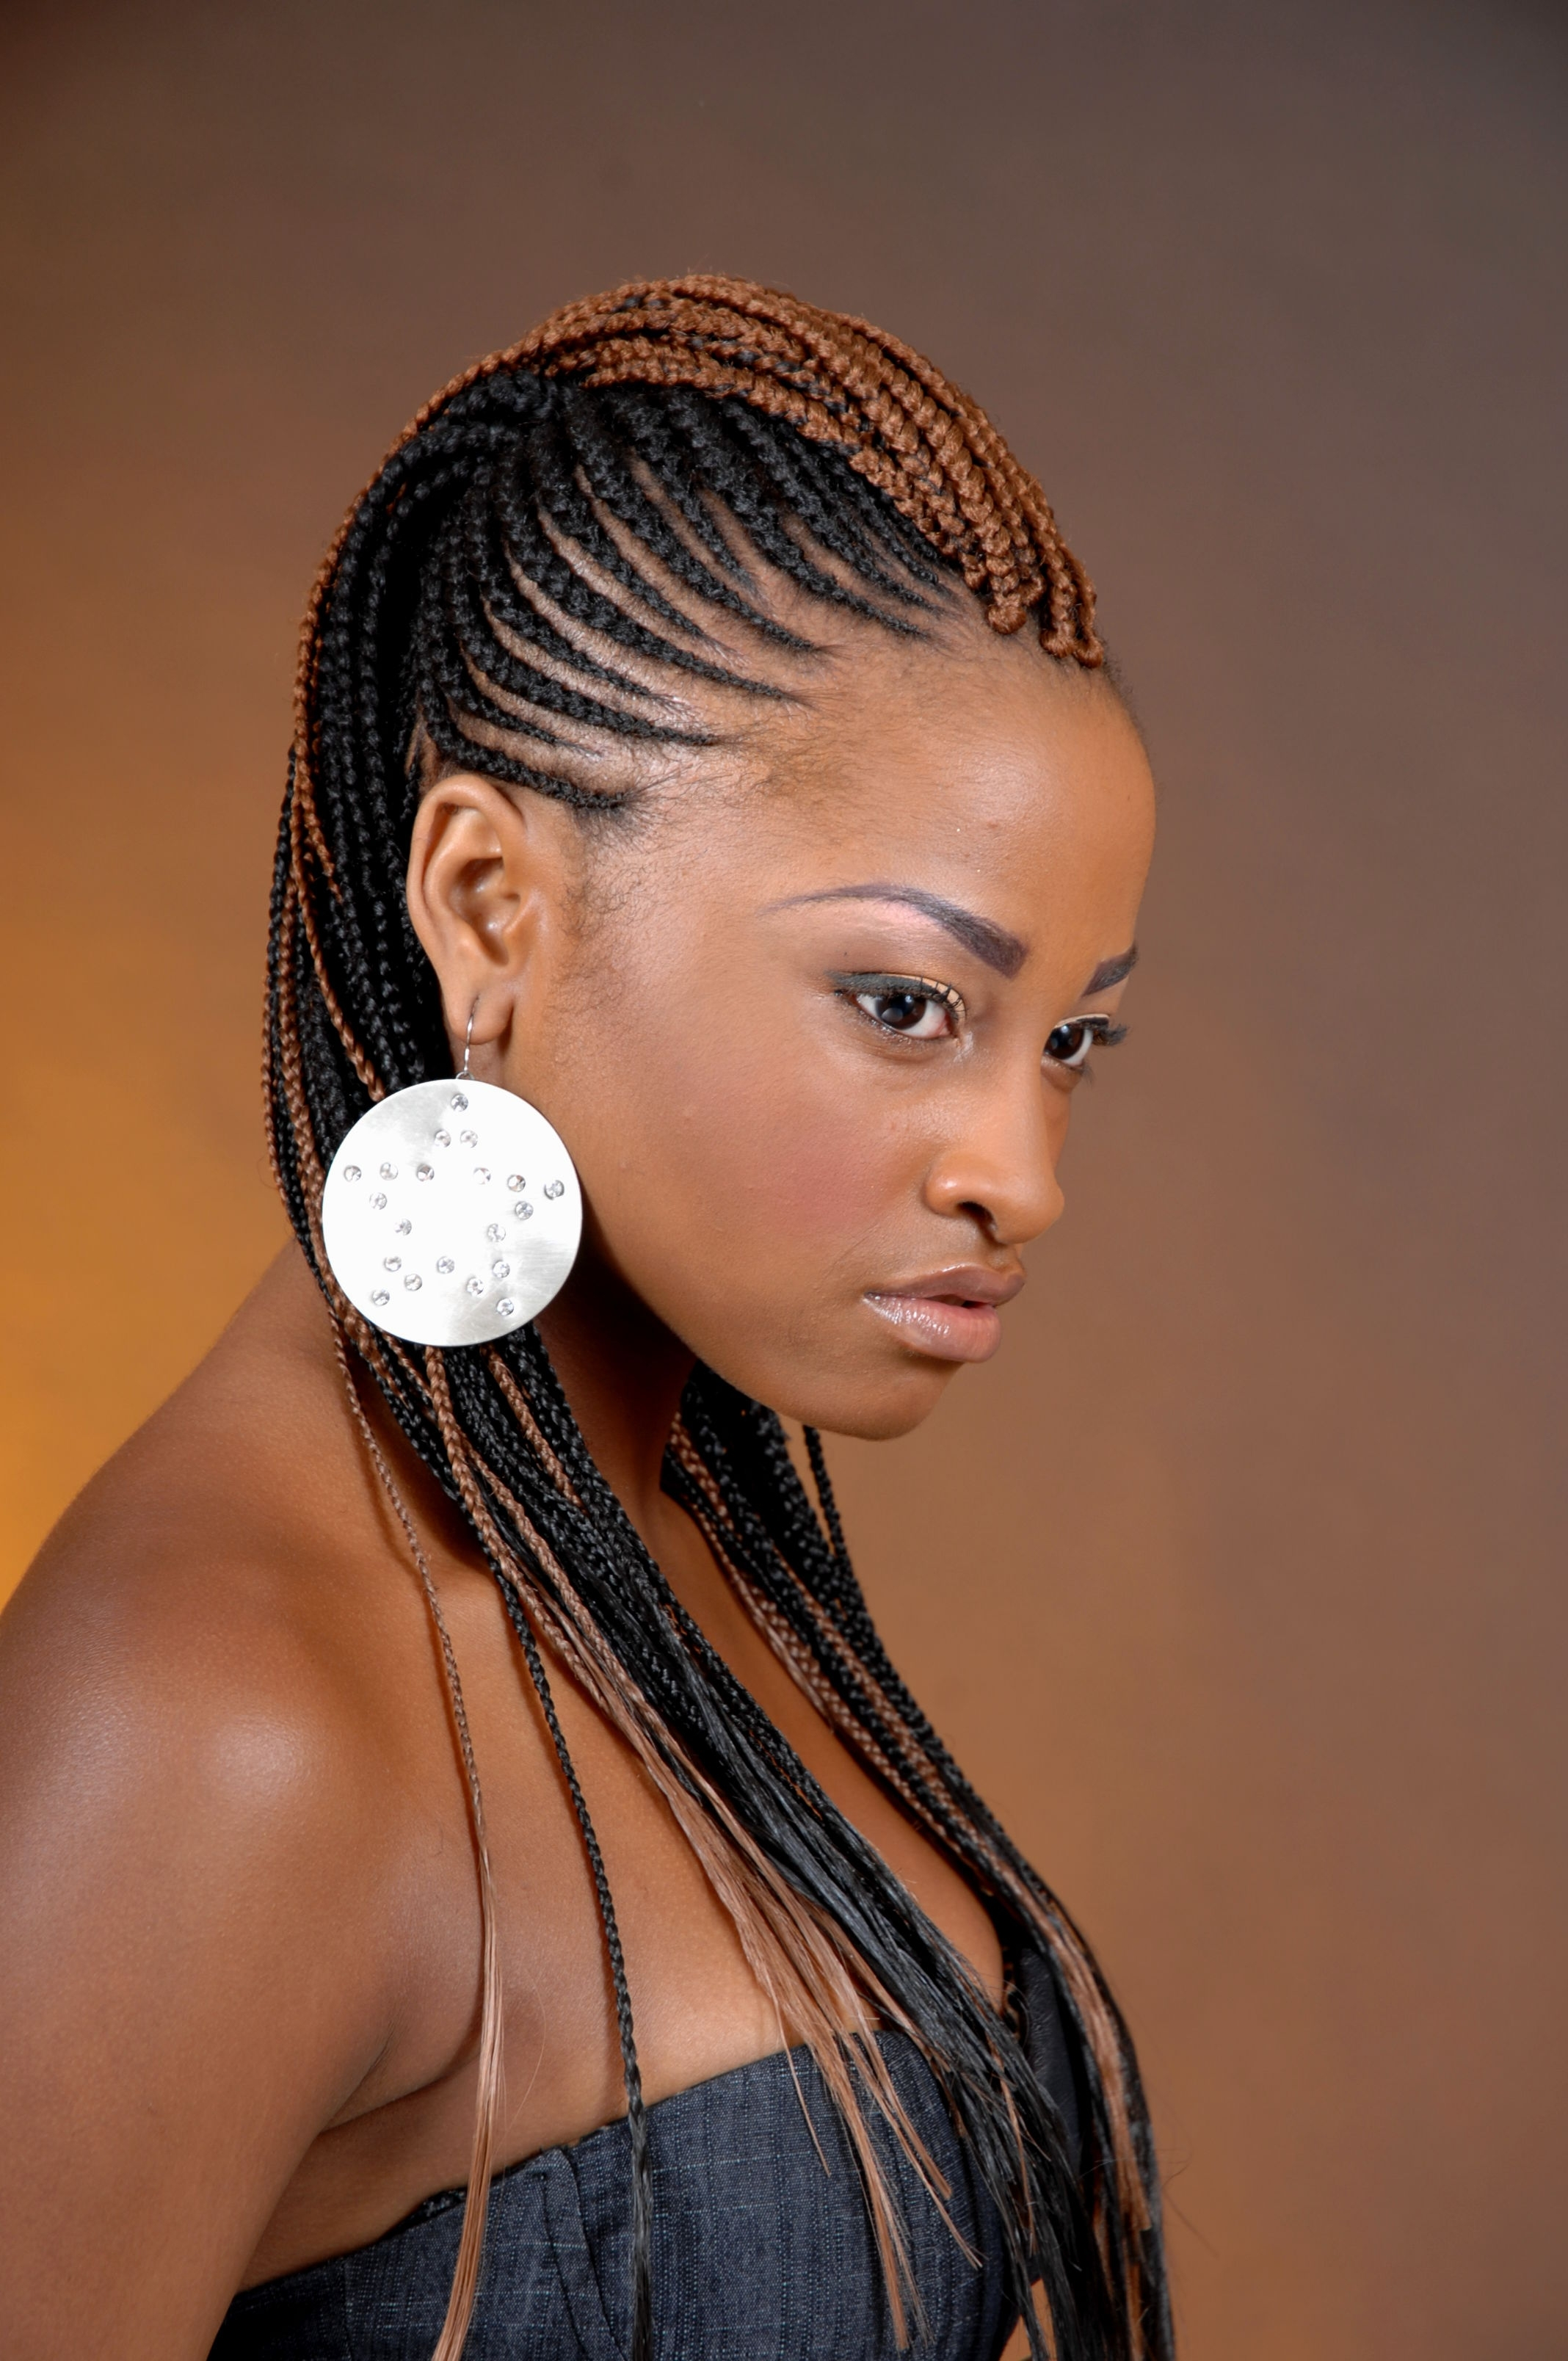 Surprising New Braids Hairstyles Latest In Kenya French Nigerian In 2018 Braided Hairstyles For Kenyan Ladies (View 12 of 15)